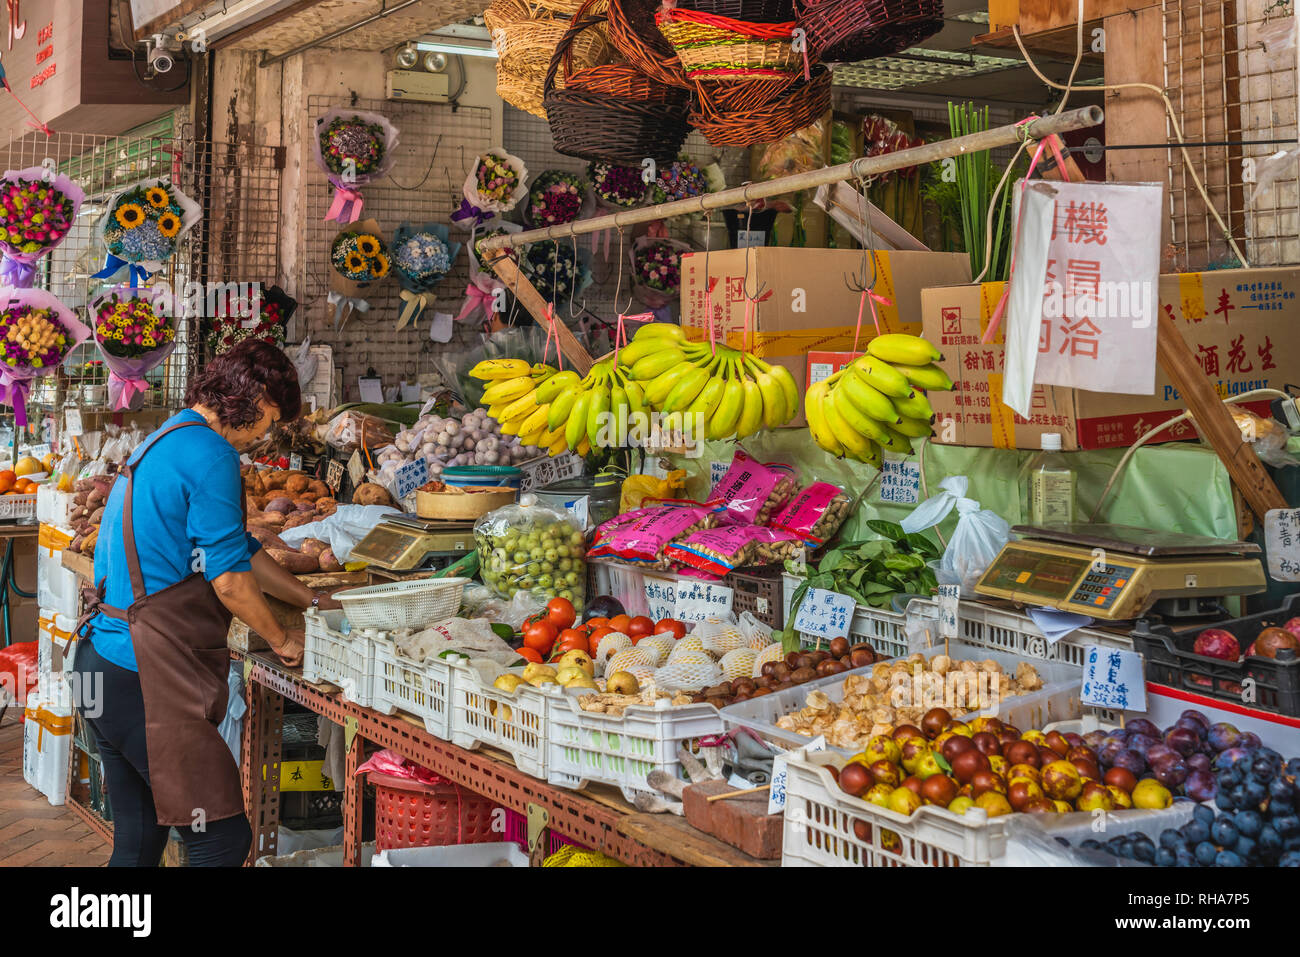 Flower and fruit shop at the Flower Market in Kowloon, Hong Kong, China, Asia. - Stock Image